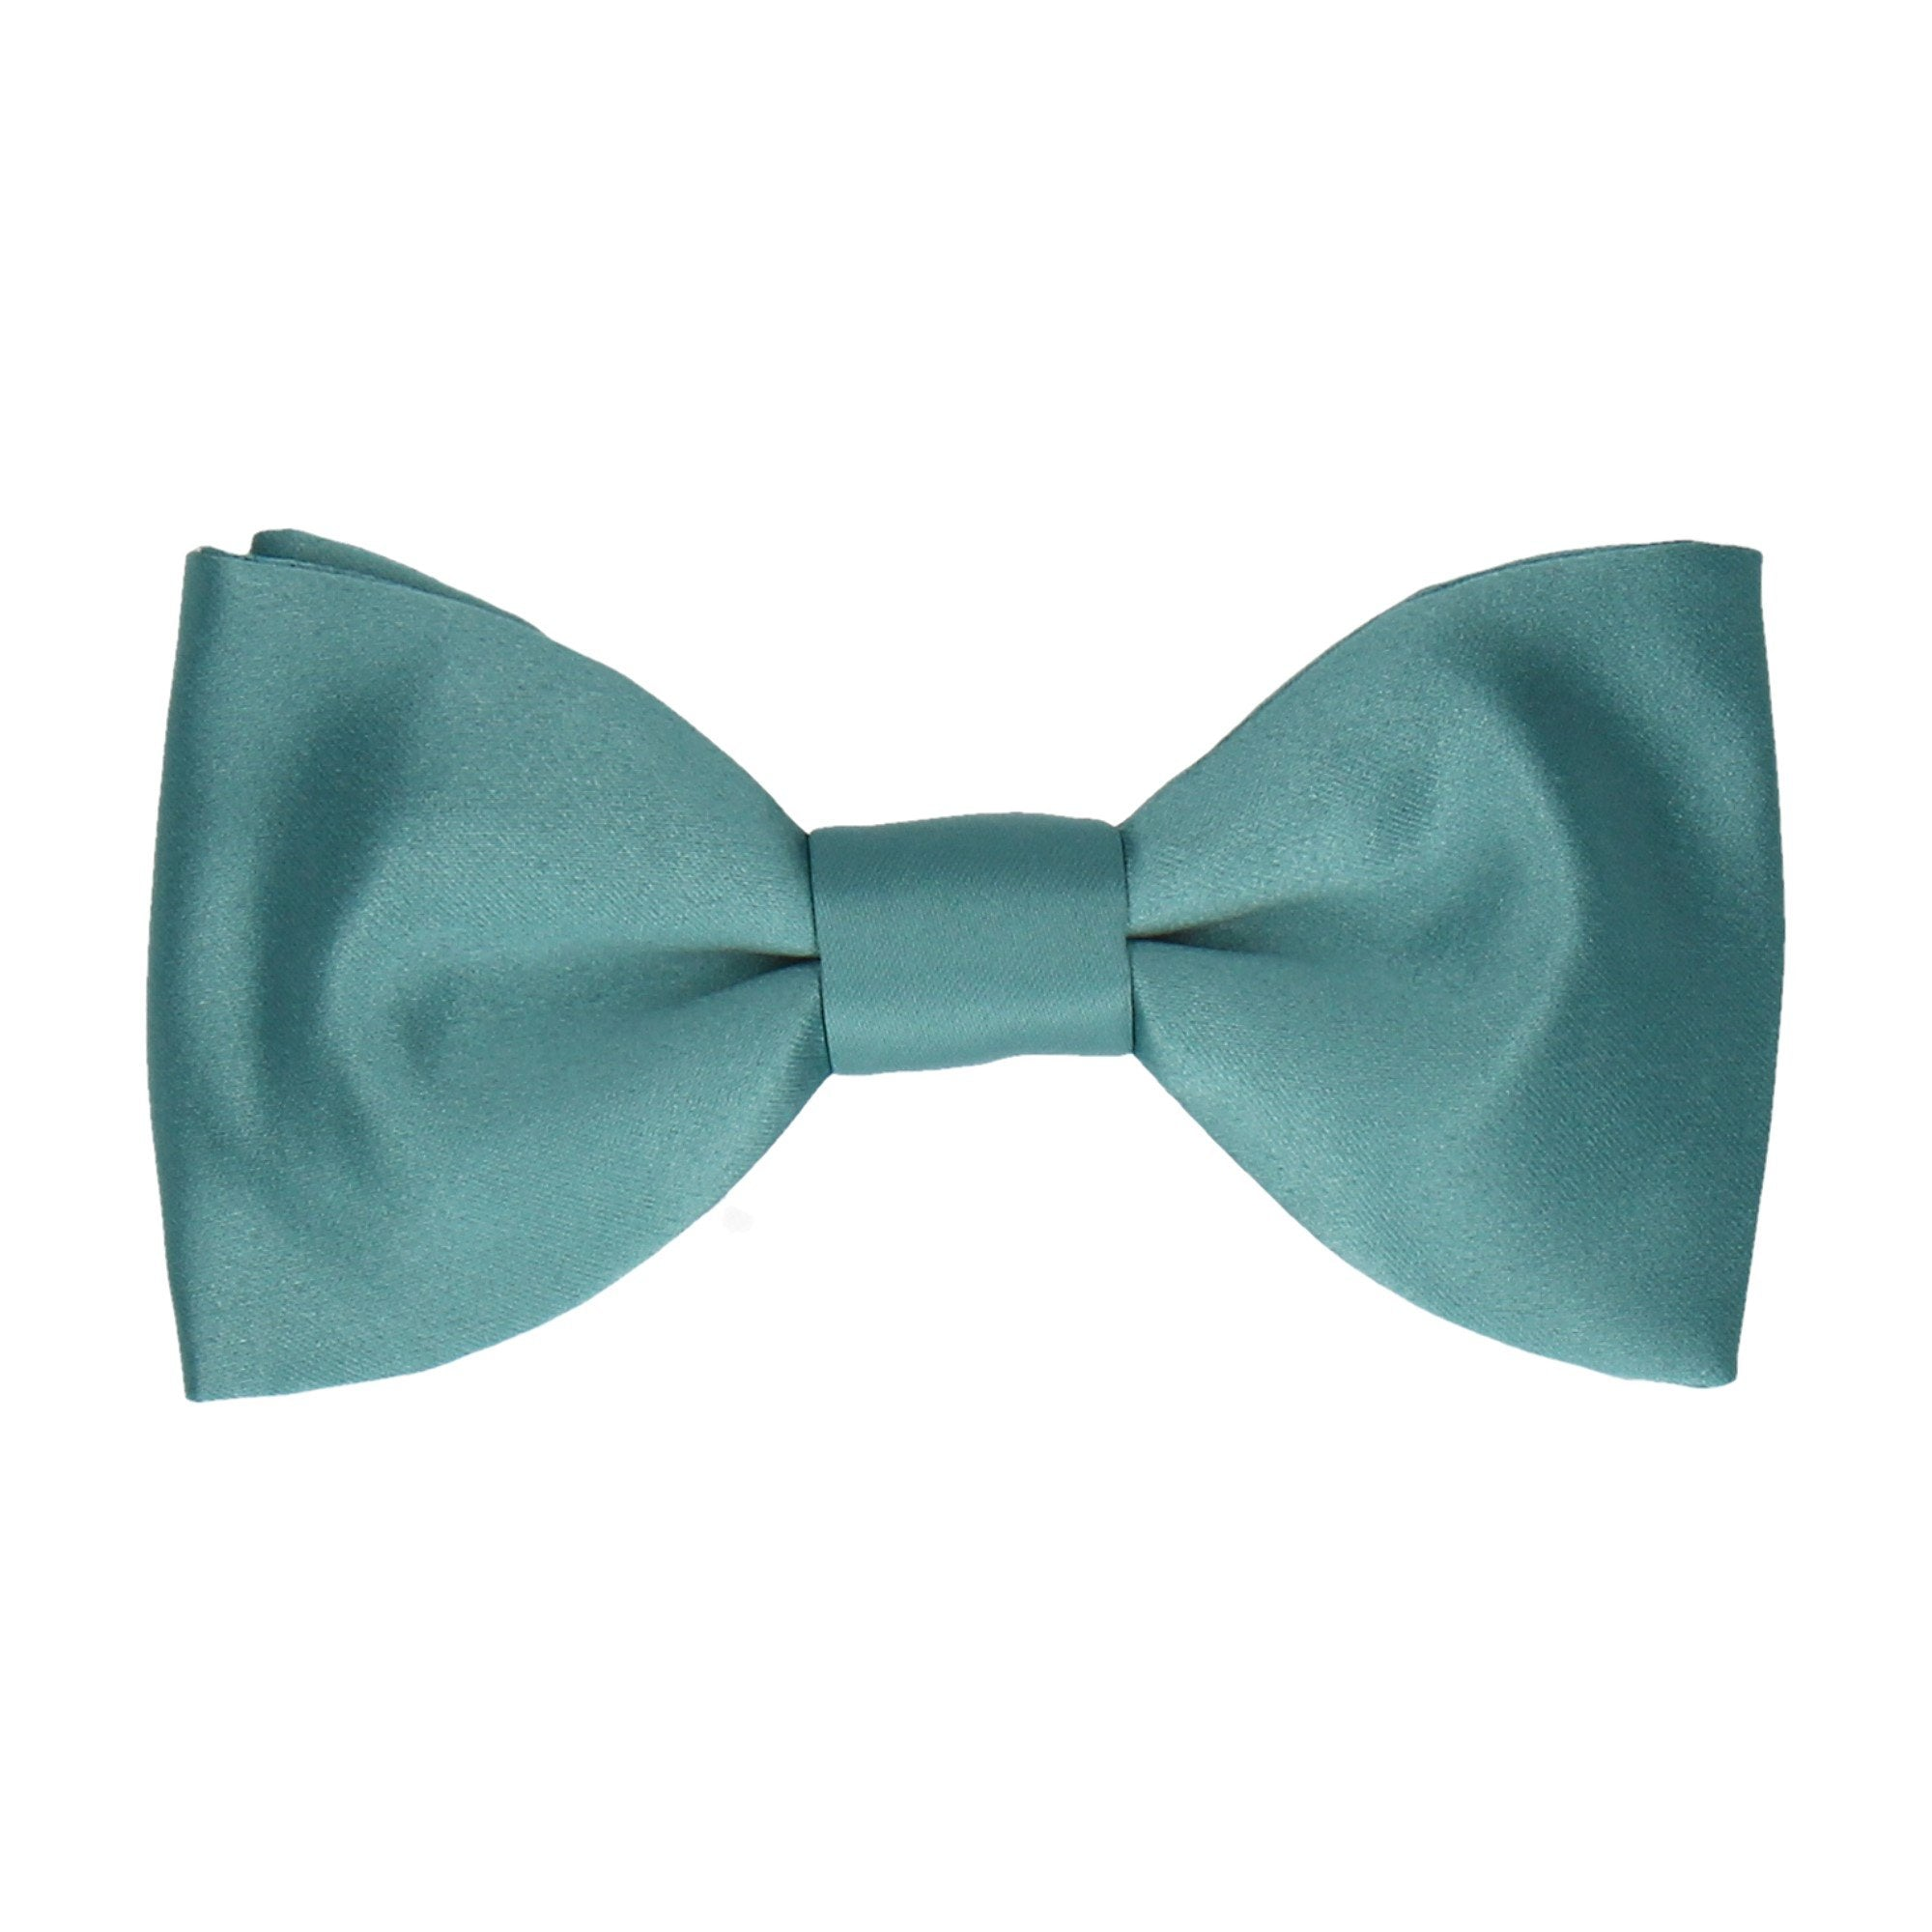 Satin Sea Green Bow Tie